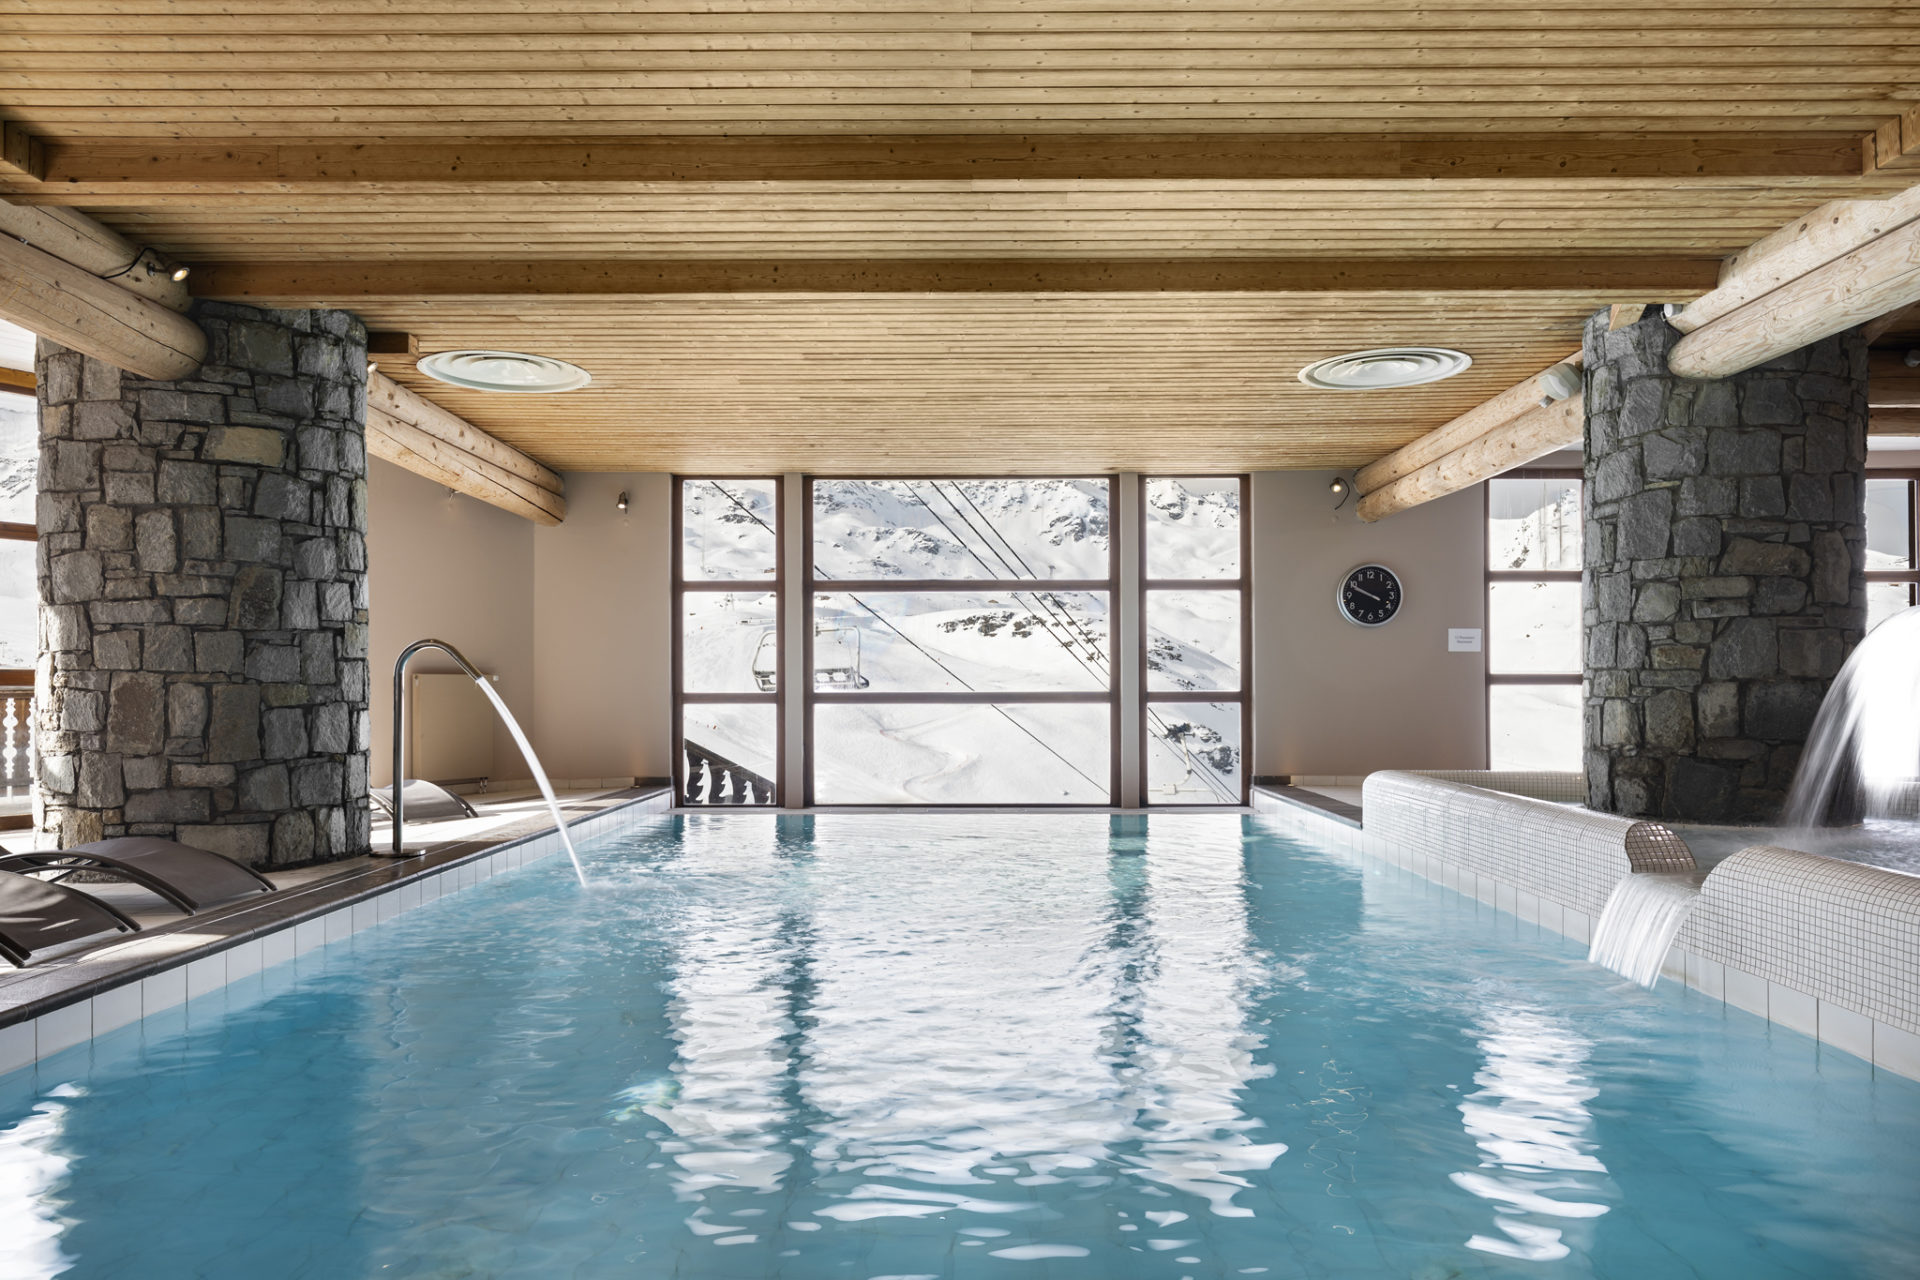 Image of the indoor swimming pool overlooking the mountain at Les Balcons de Val Thorens